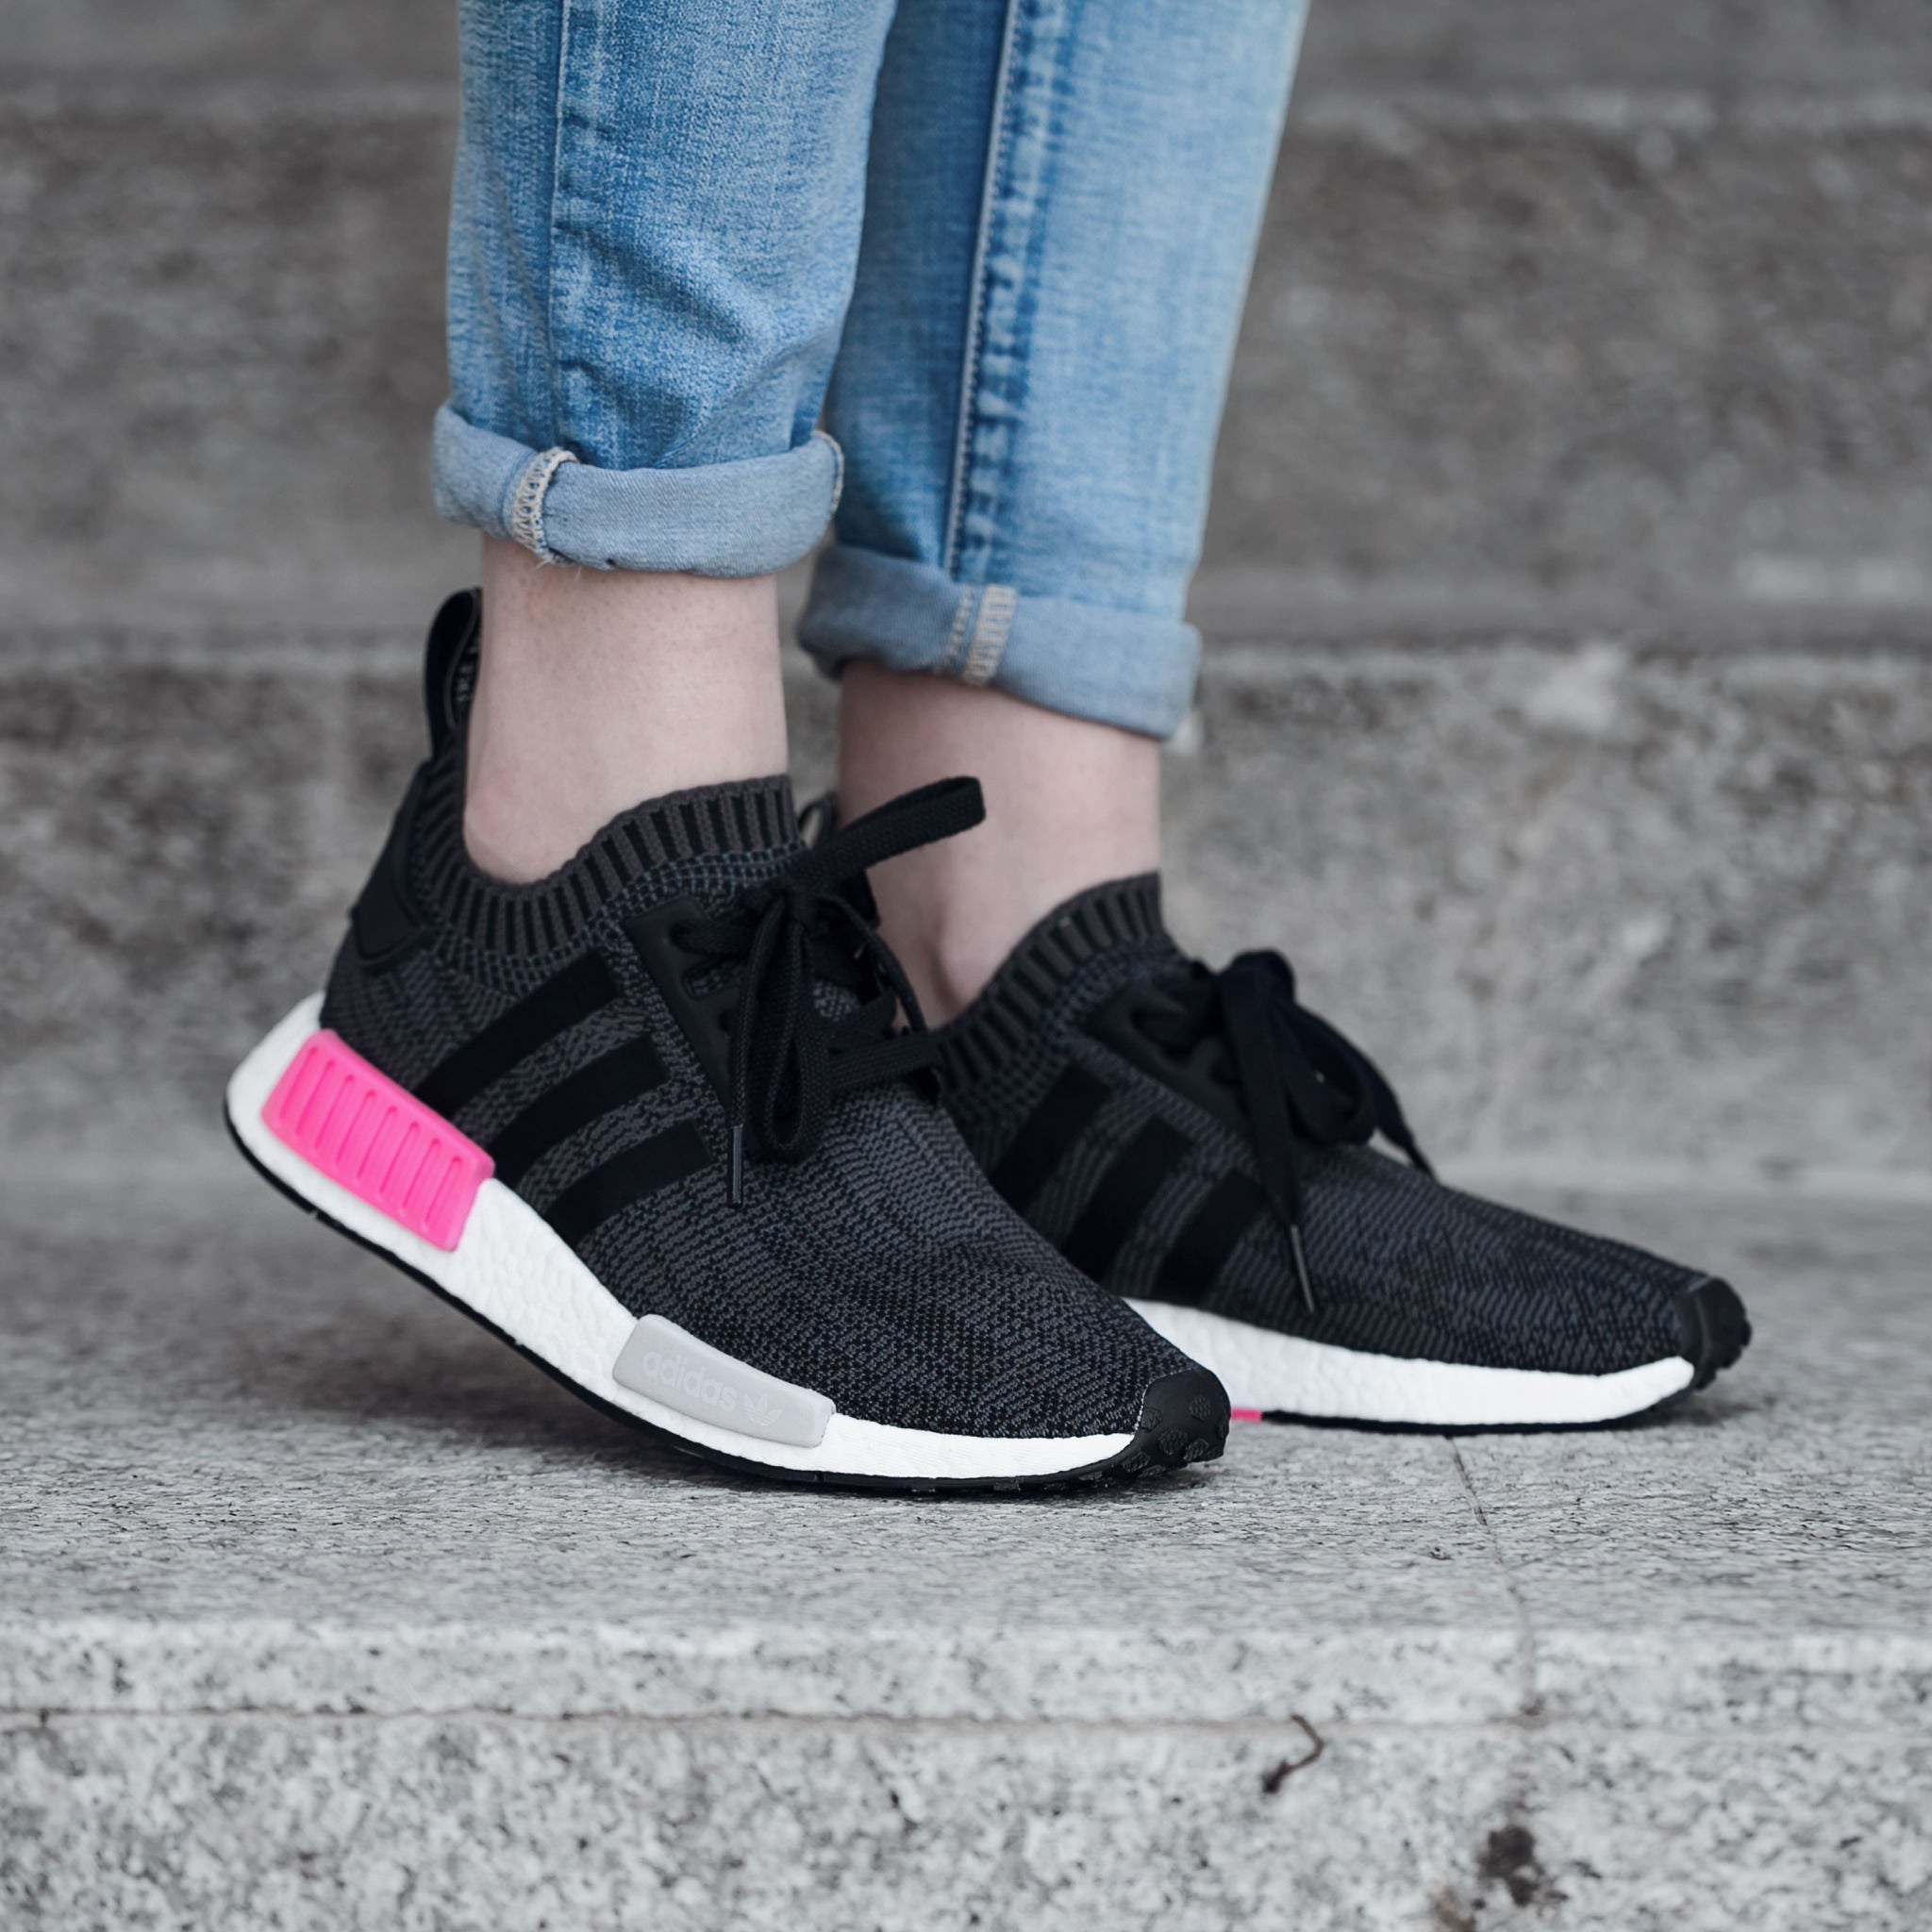 adidas NMD R1 Primeknit Black/Pink / First Look